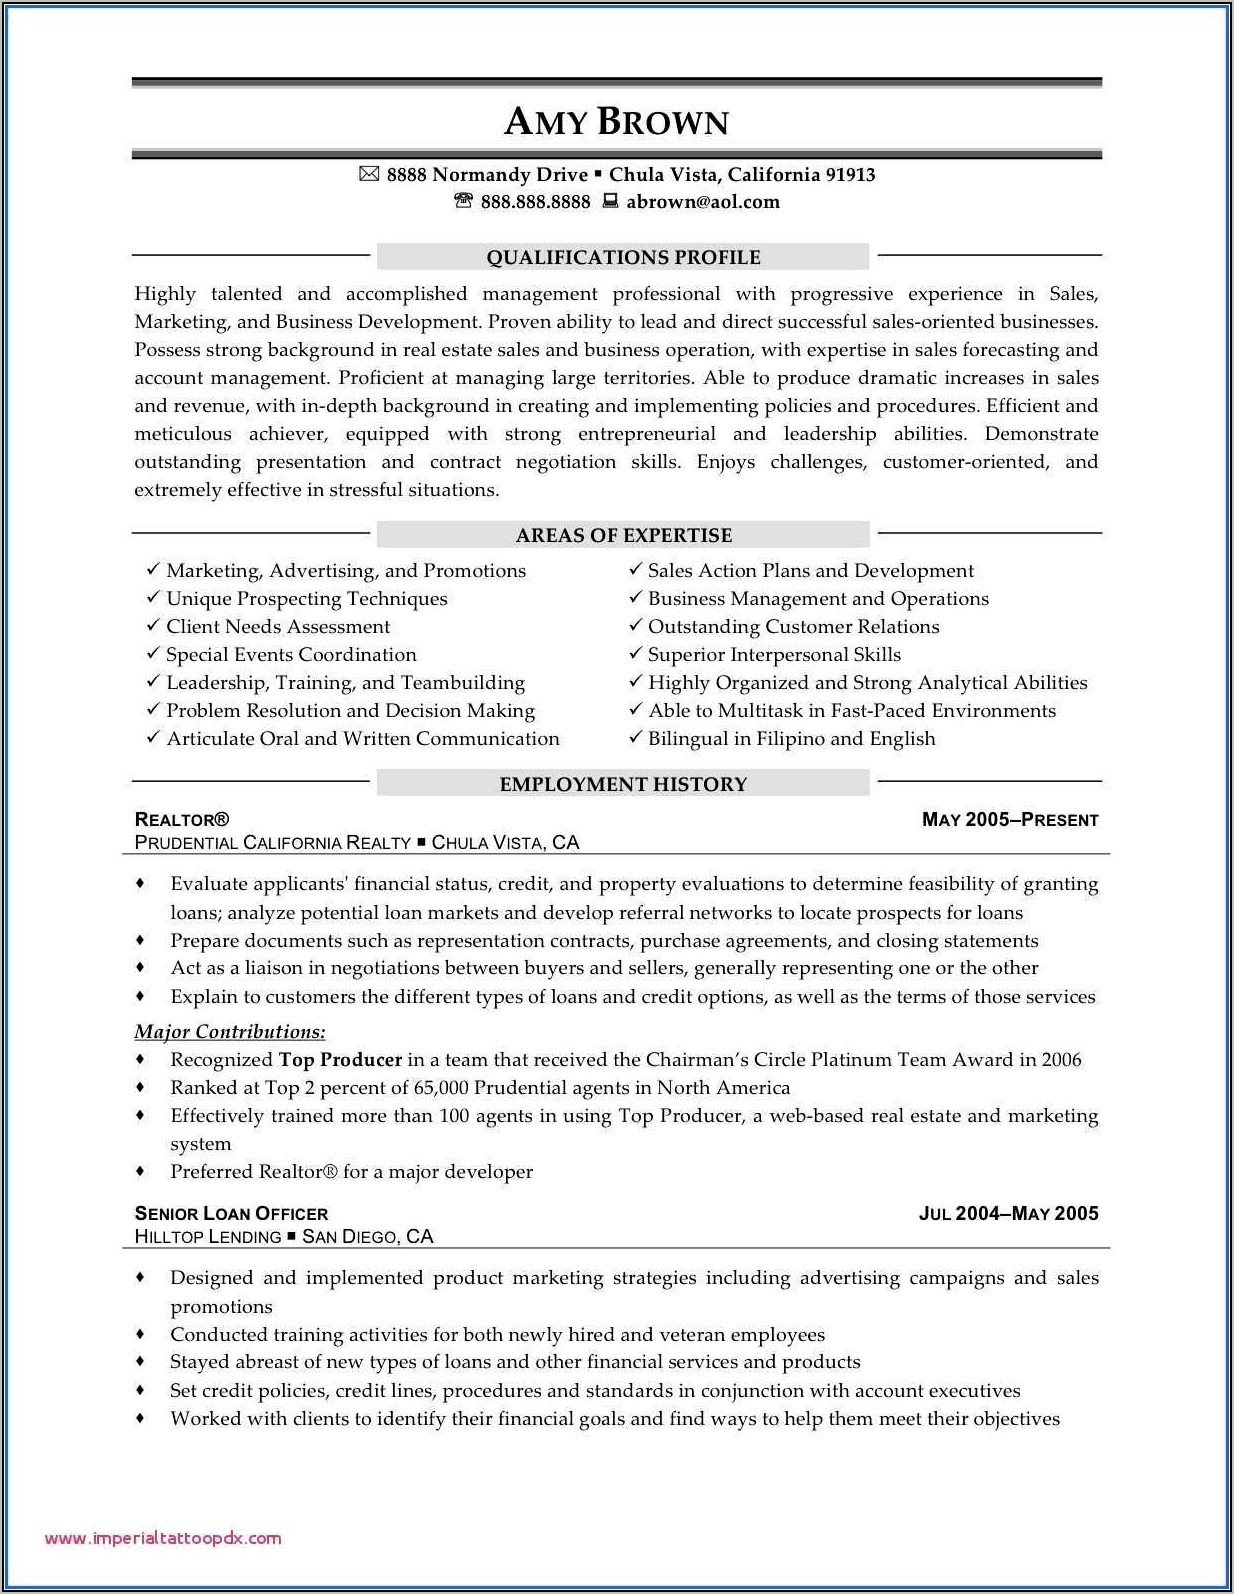 Sample Resume For Sales Manager In Telecom